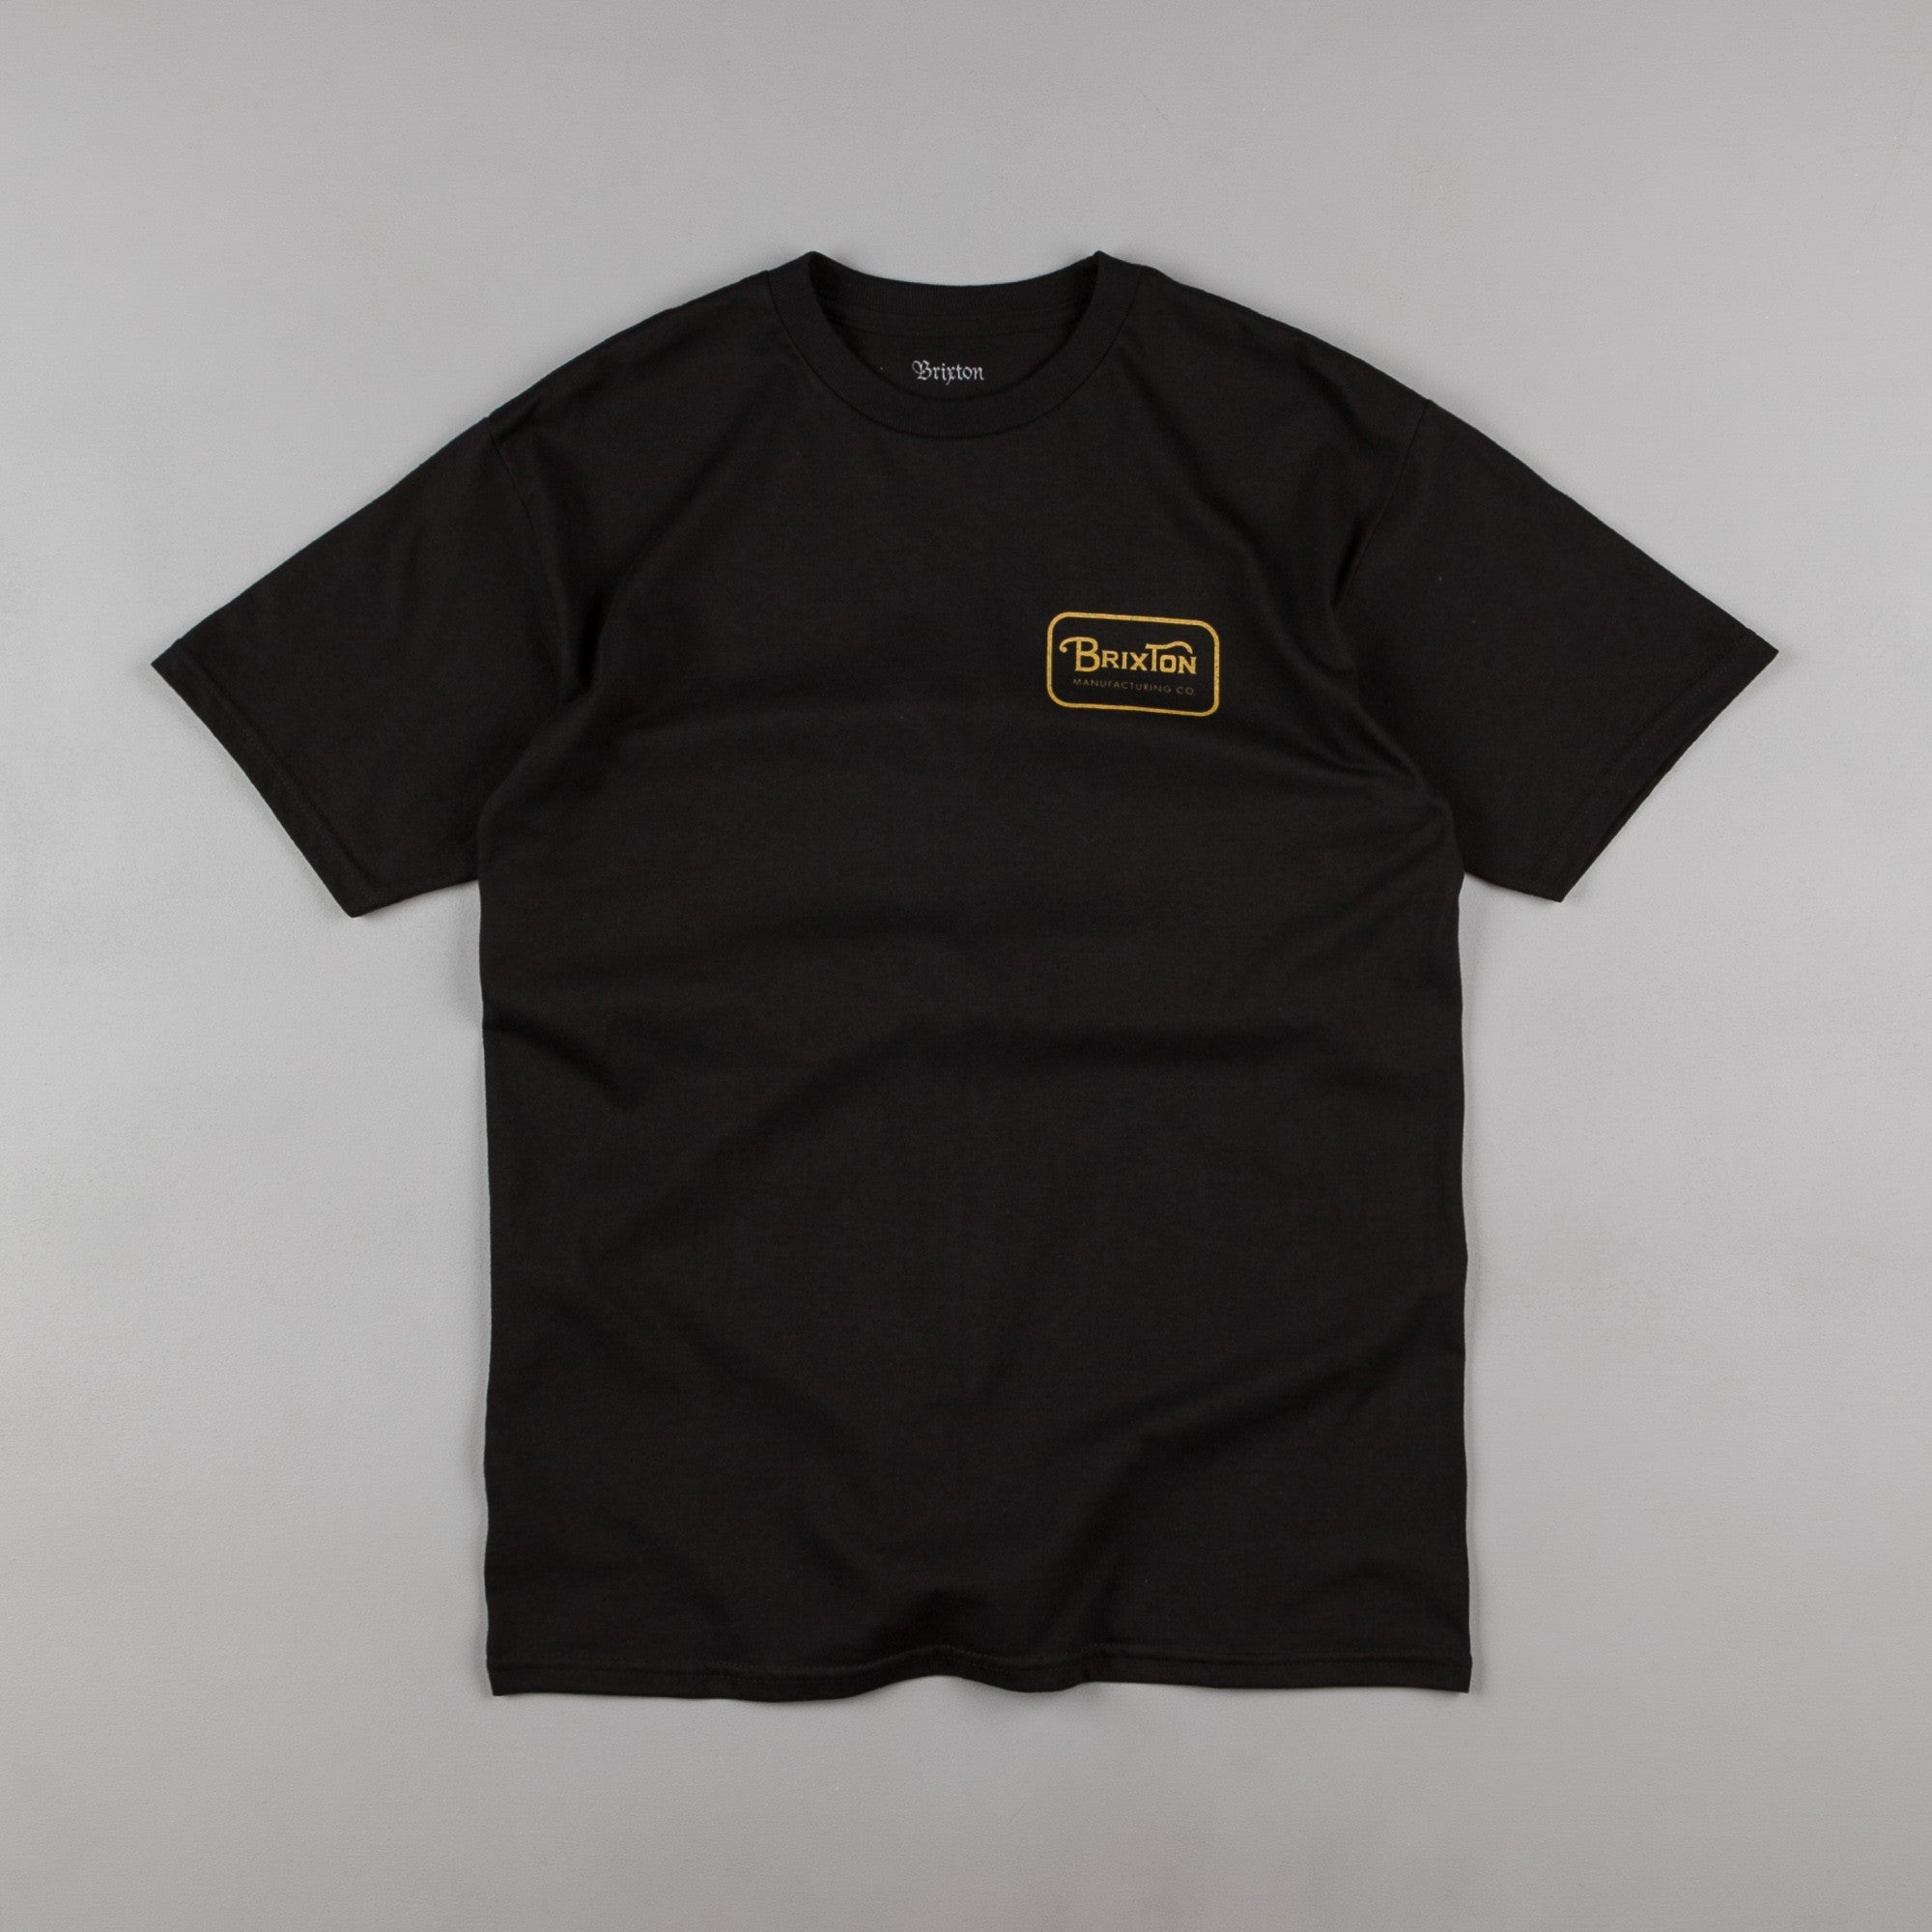 Brixton Grade T-Shirt - Black / Gold